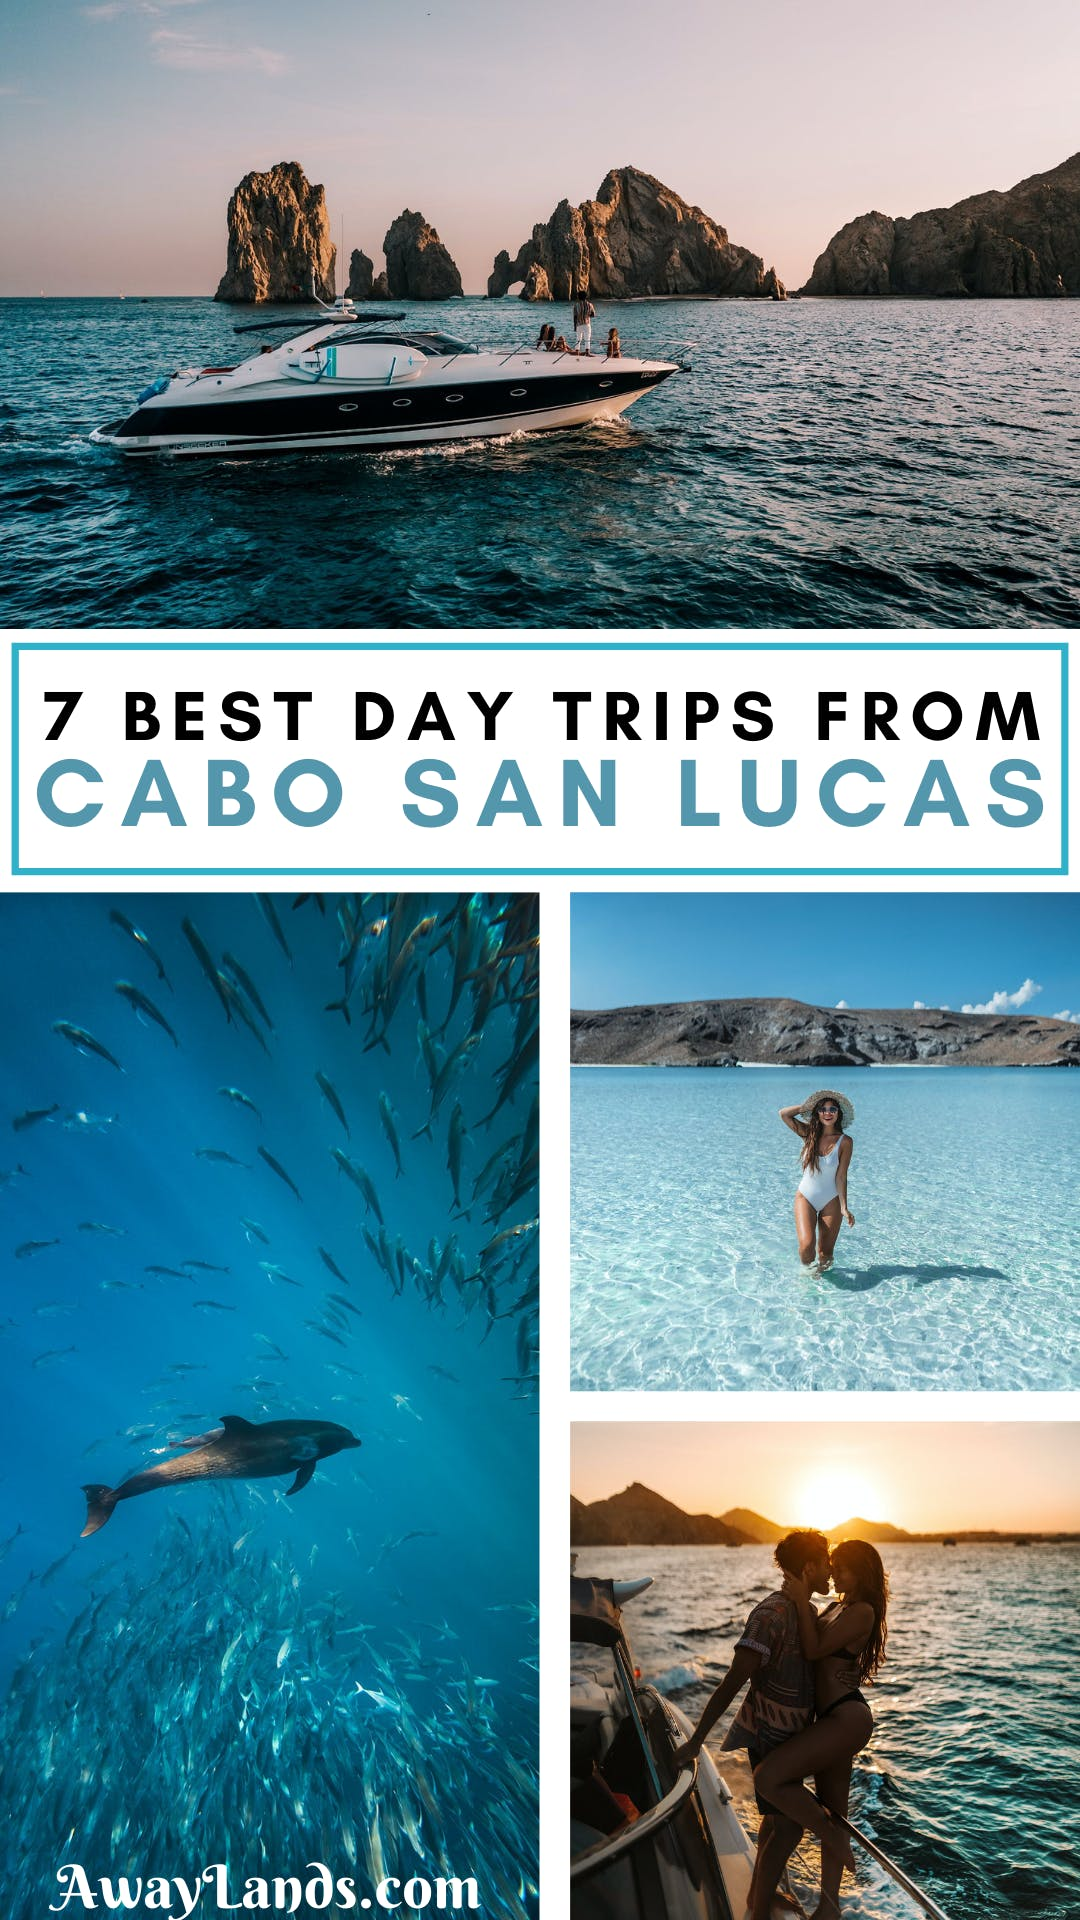 Looking for adventures, culture, and unbeatable nature on your Los Cabos trip? Cabo is known for luxury beach-front resorts, but take some excursions from Todos Santos to La Paz, historical cities, amazing surf beaches, crystal clear waters and canyon waterfalls - here's the best day trips from Cabo! #cabosanlucas | day trips from Cabo San Lucas | best excursions in Cabo San Lucas | best things to do near Cabo San Lucas | Cabo day trips | day trips from Cabo | Baja California things to do